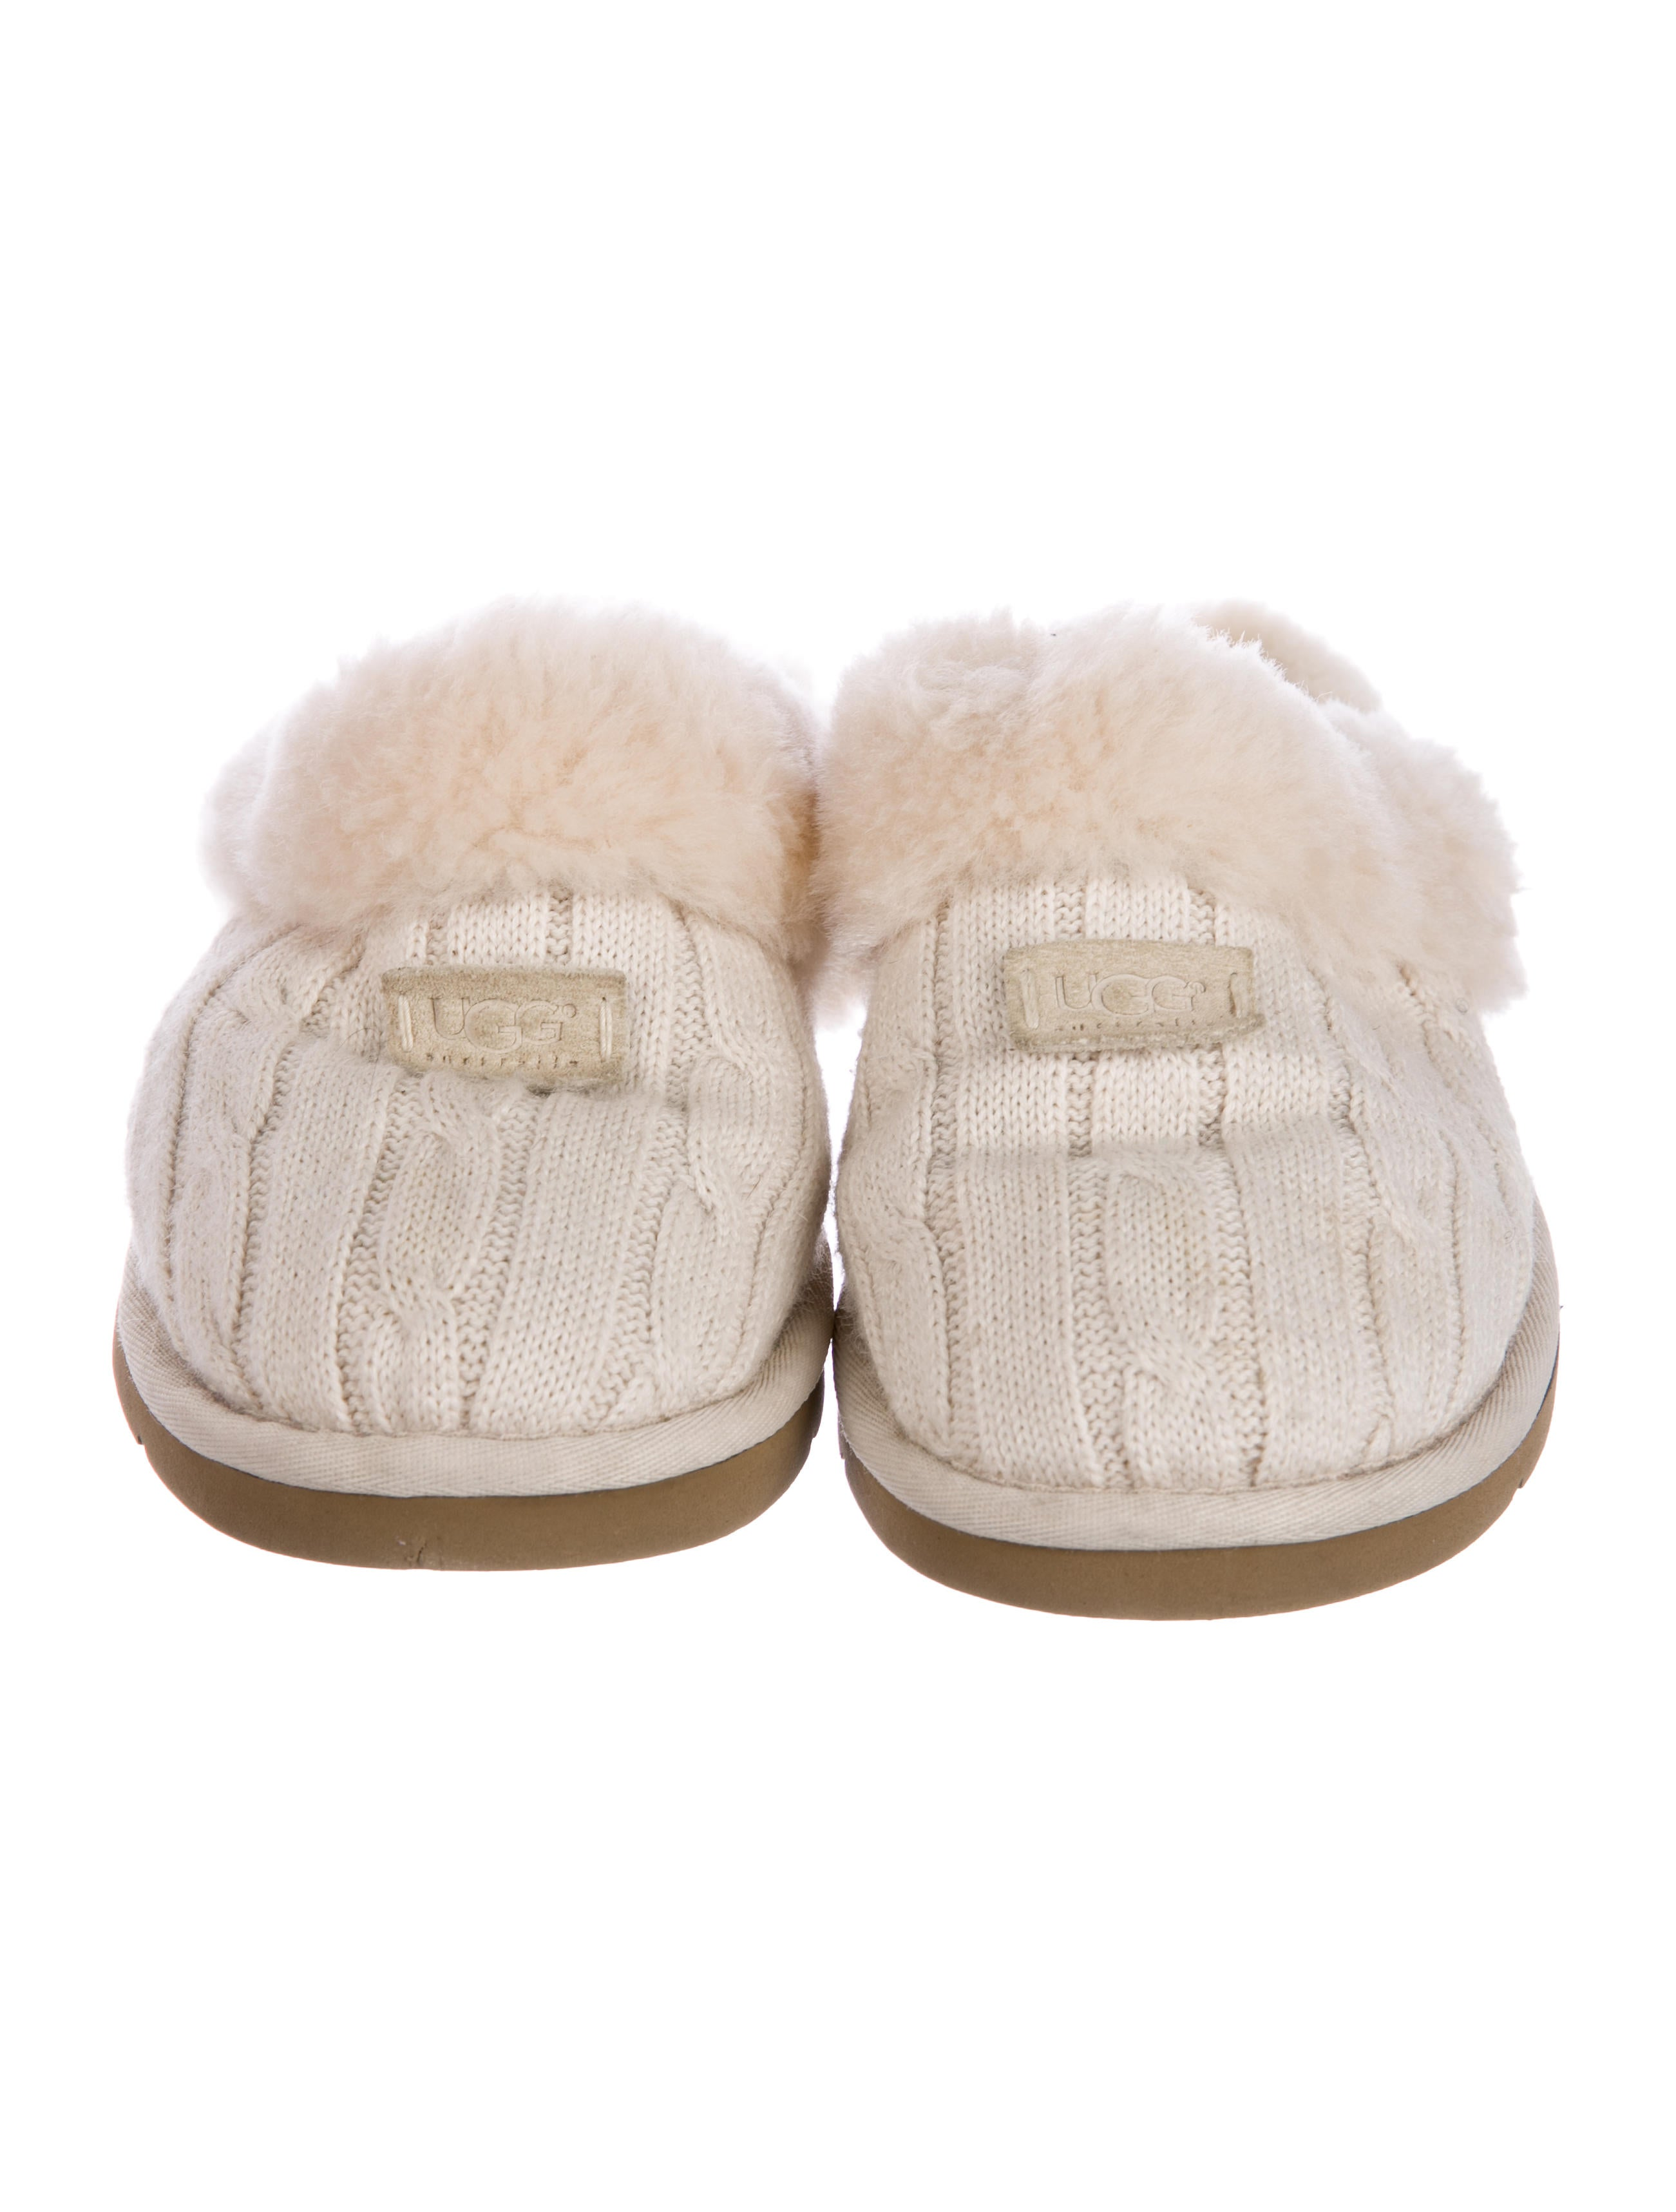 Ugg Australia Cozy Knit Slippers Shoes Wuugg25846 The Realreal